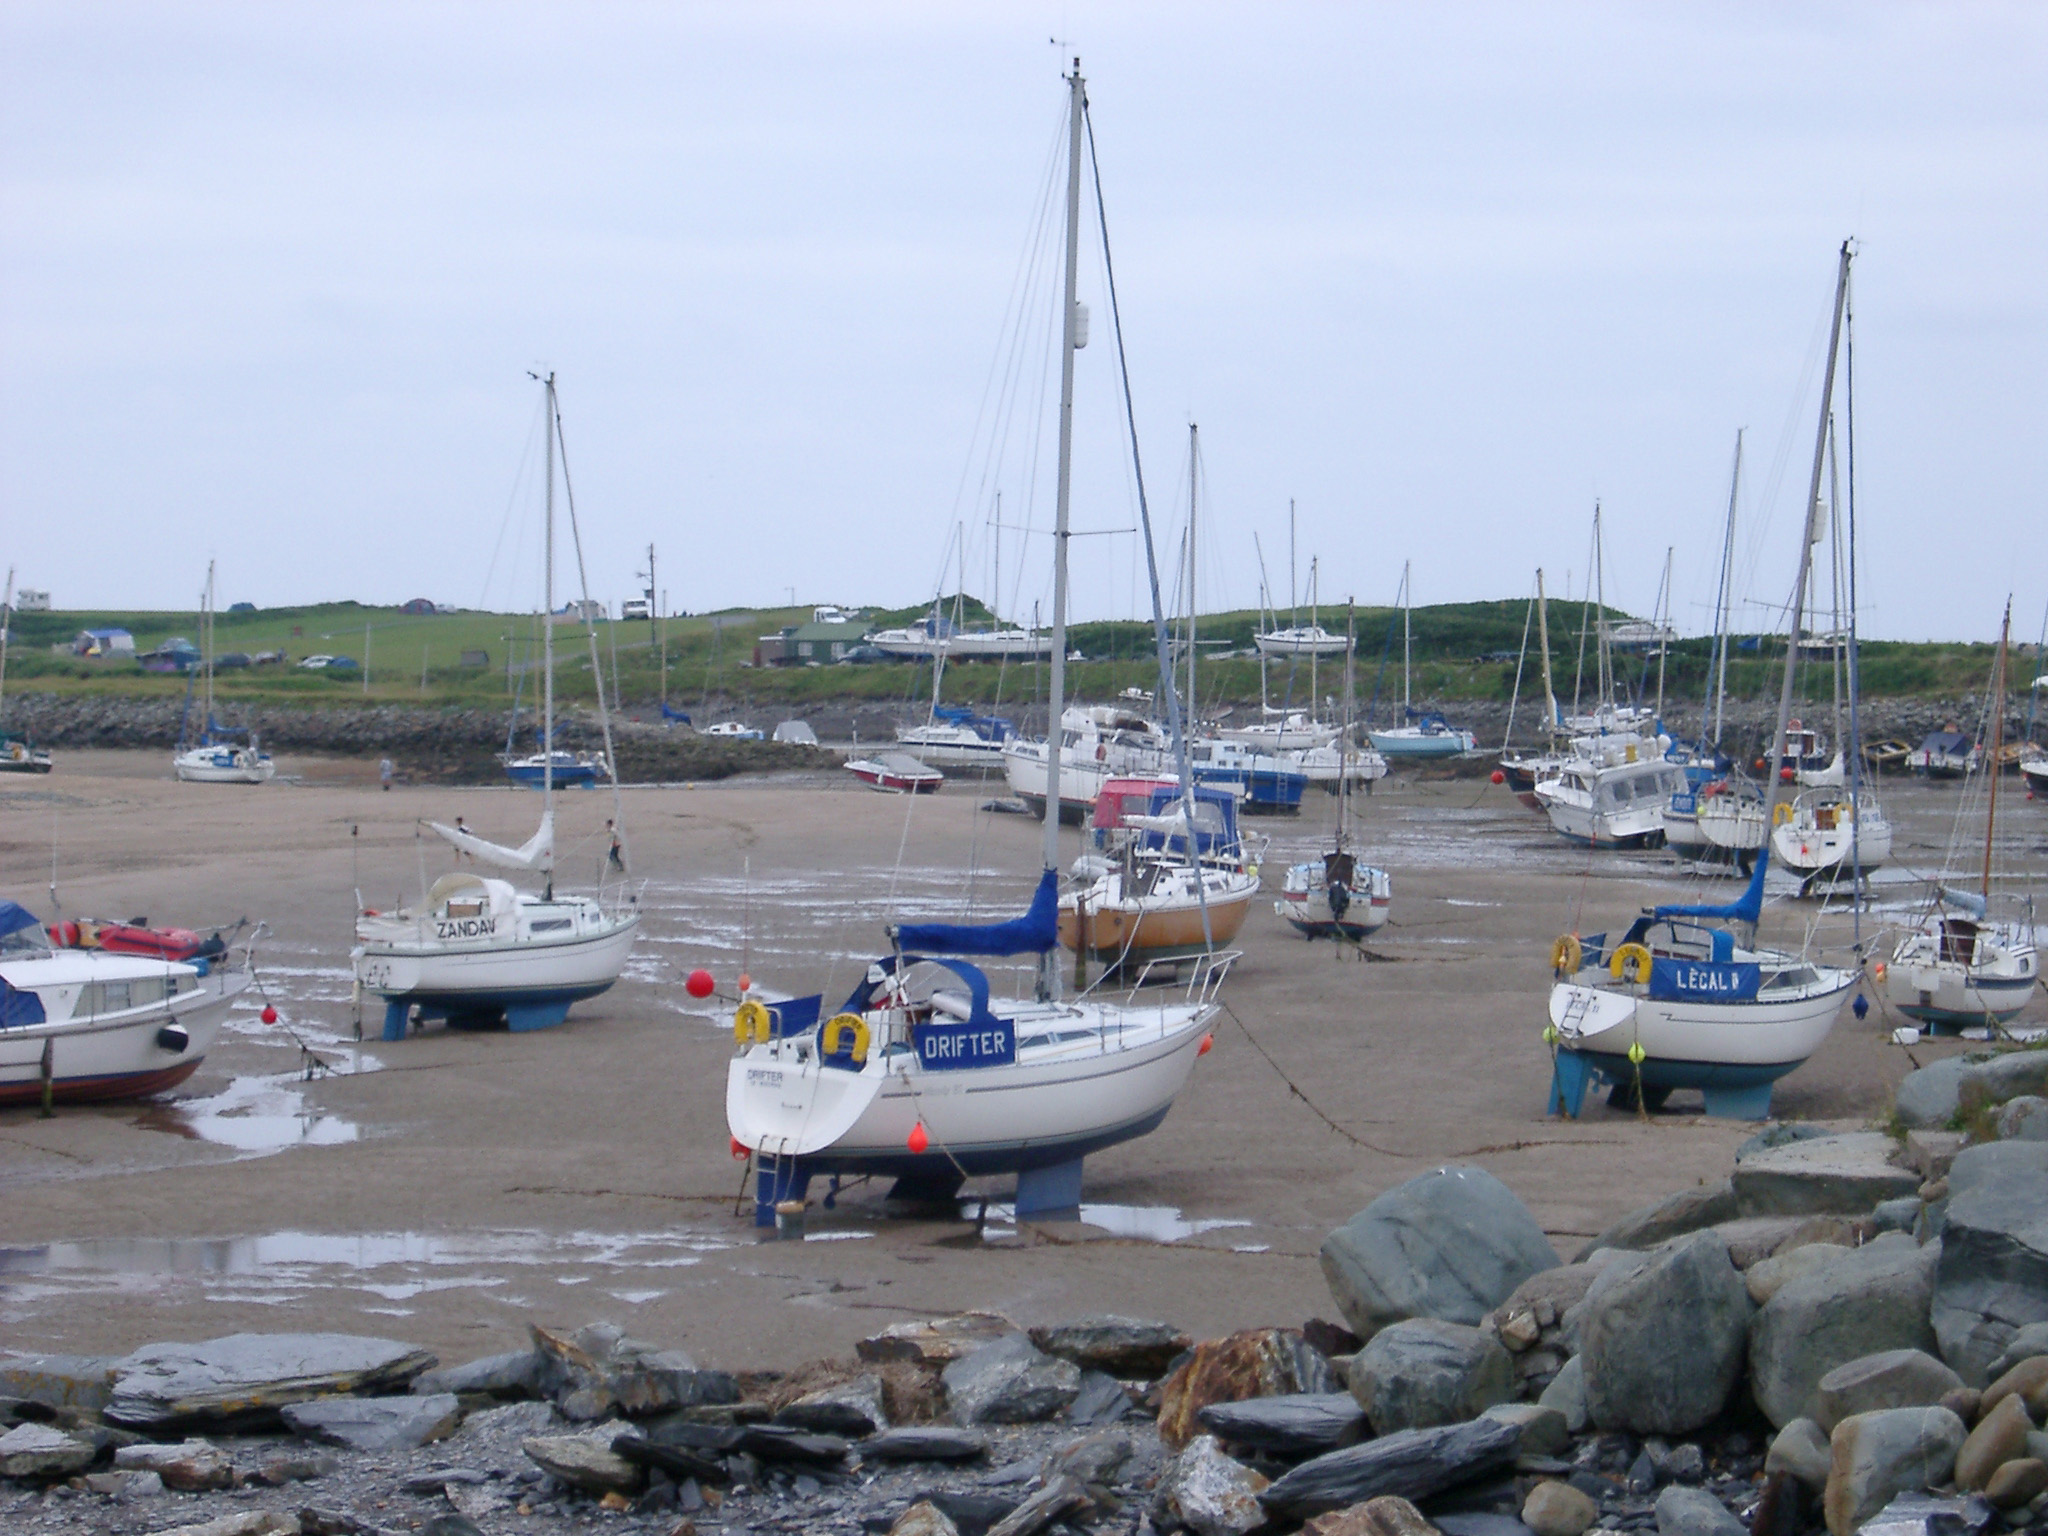 Boats in a tidal harbor beached high and dry on the sand as the tide has gone out in the estuary in Shell Island, UK